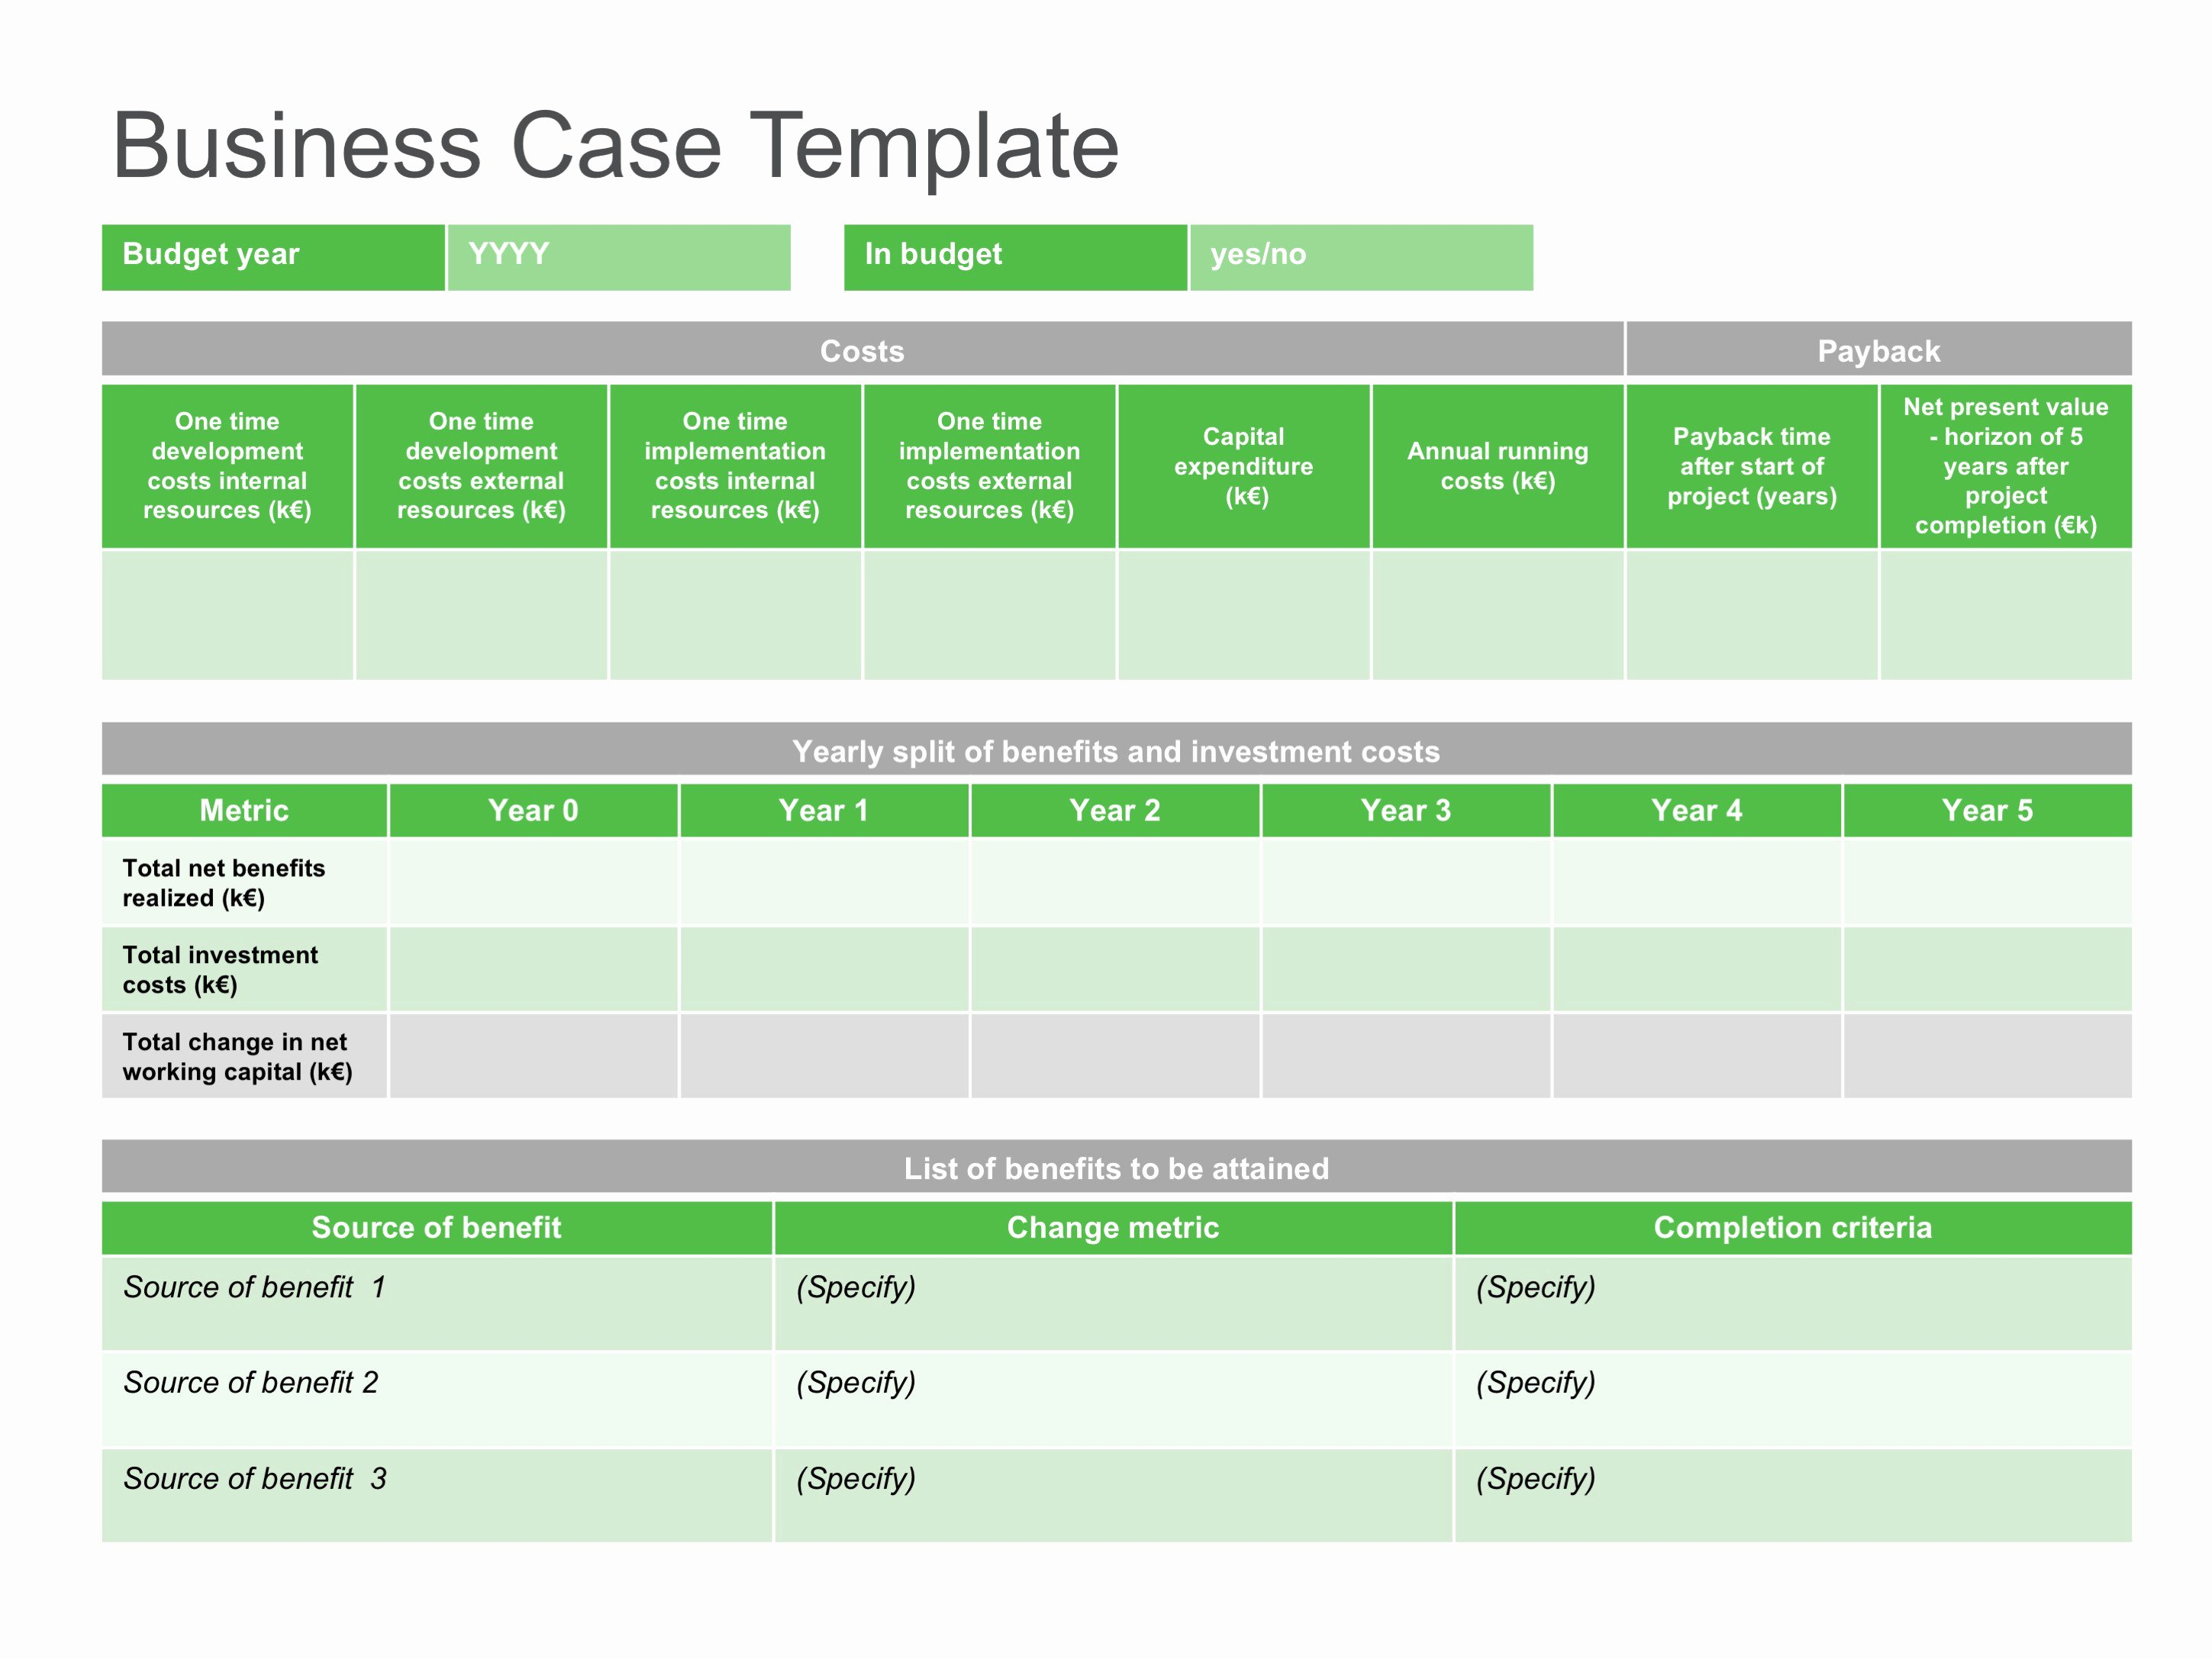 Use Case Template Excel Lovely Sample Business Case Templates – Business Case Template